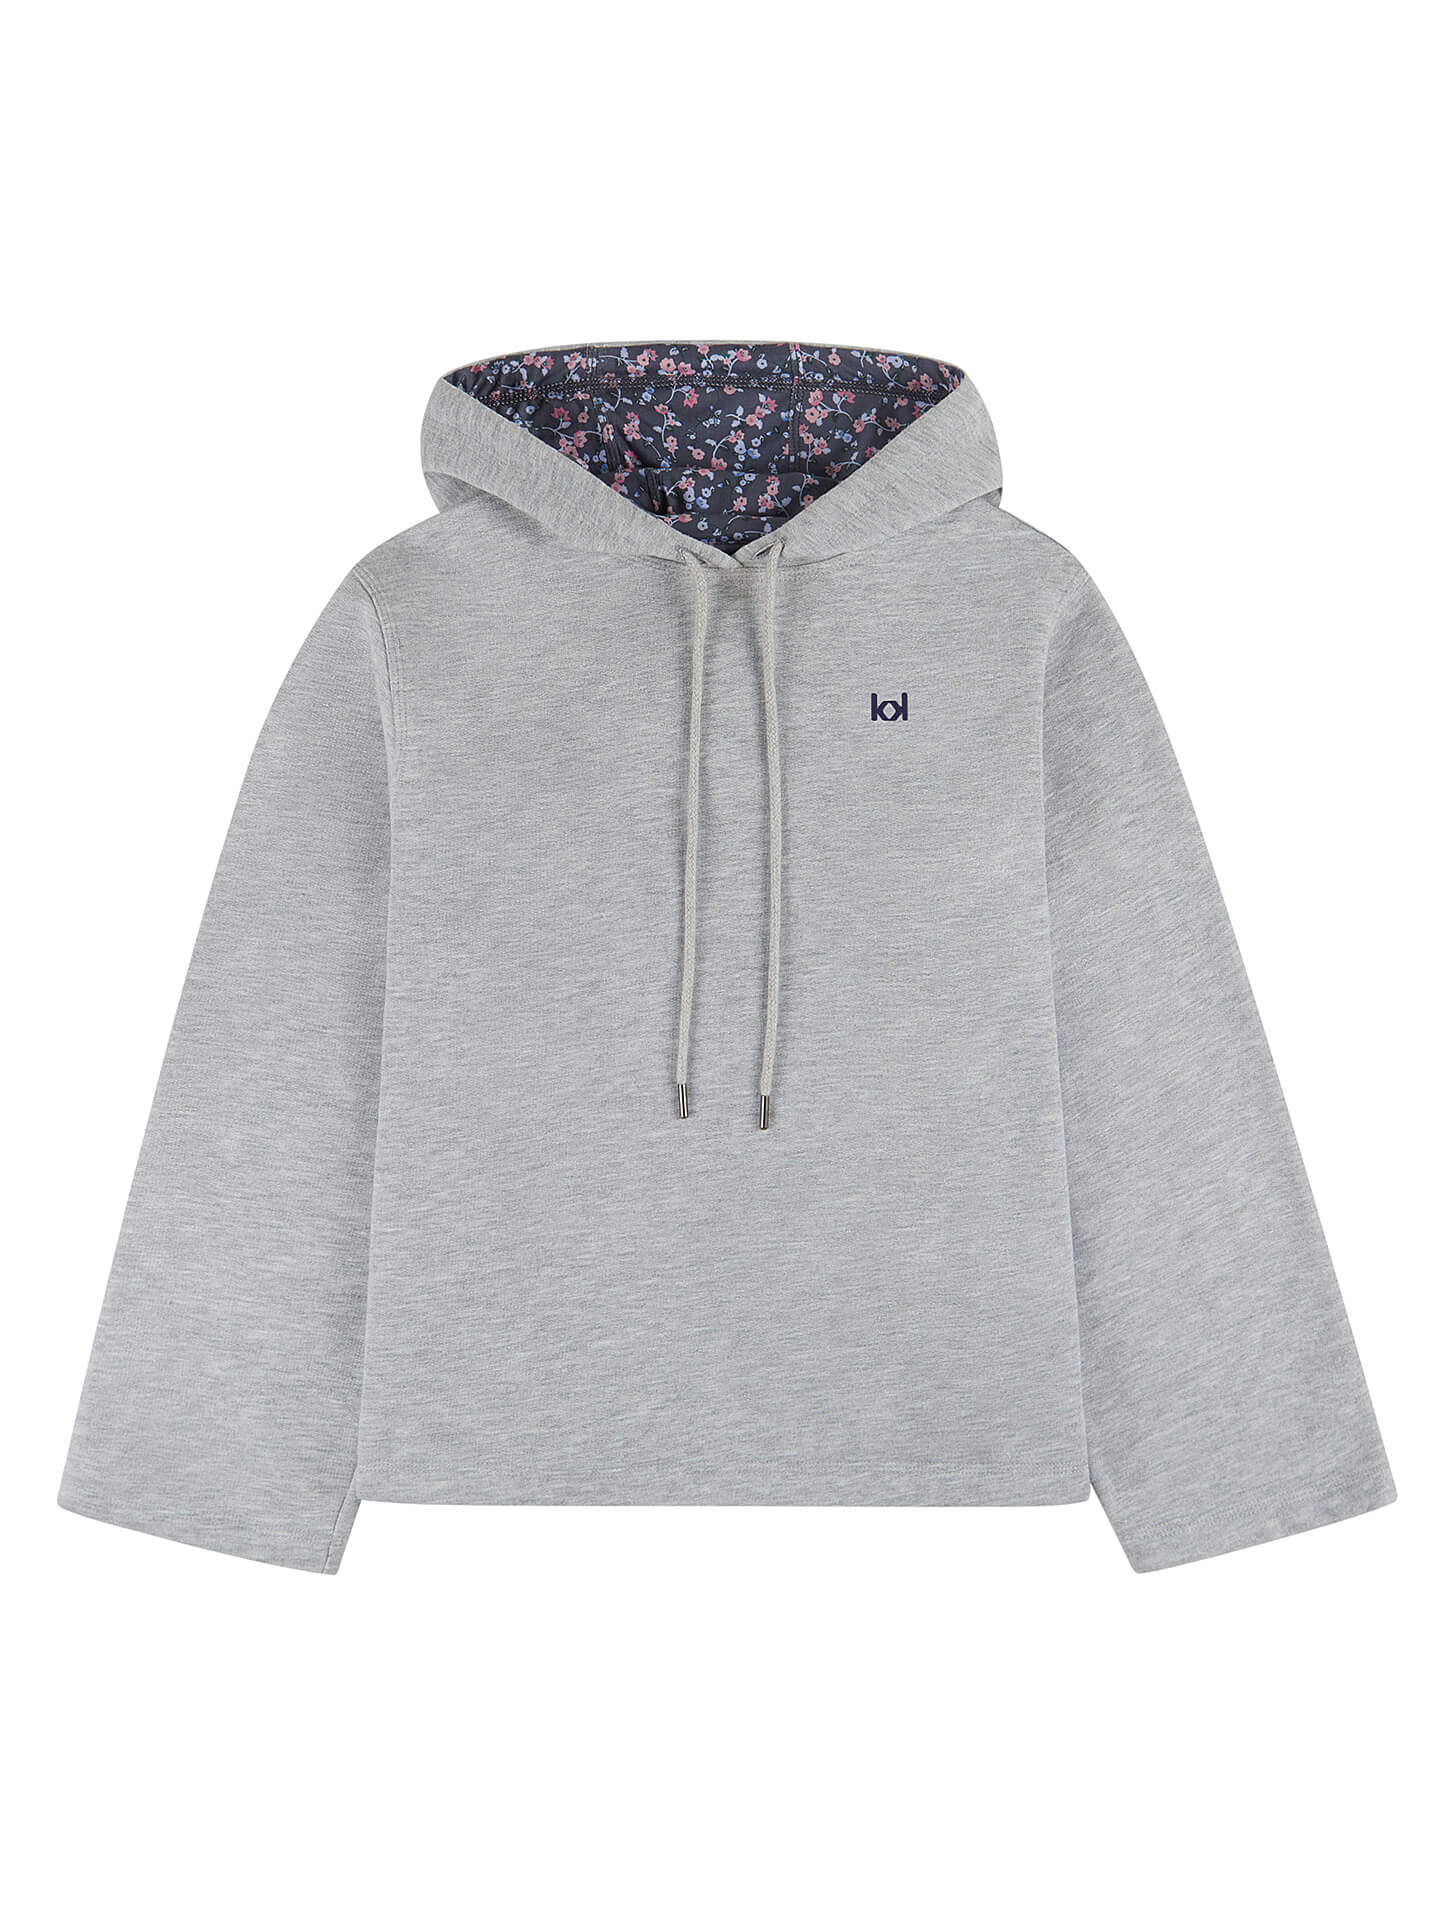 One grey hoodie with violet flowers designed